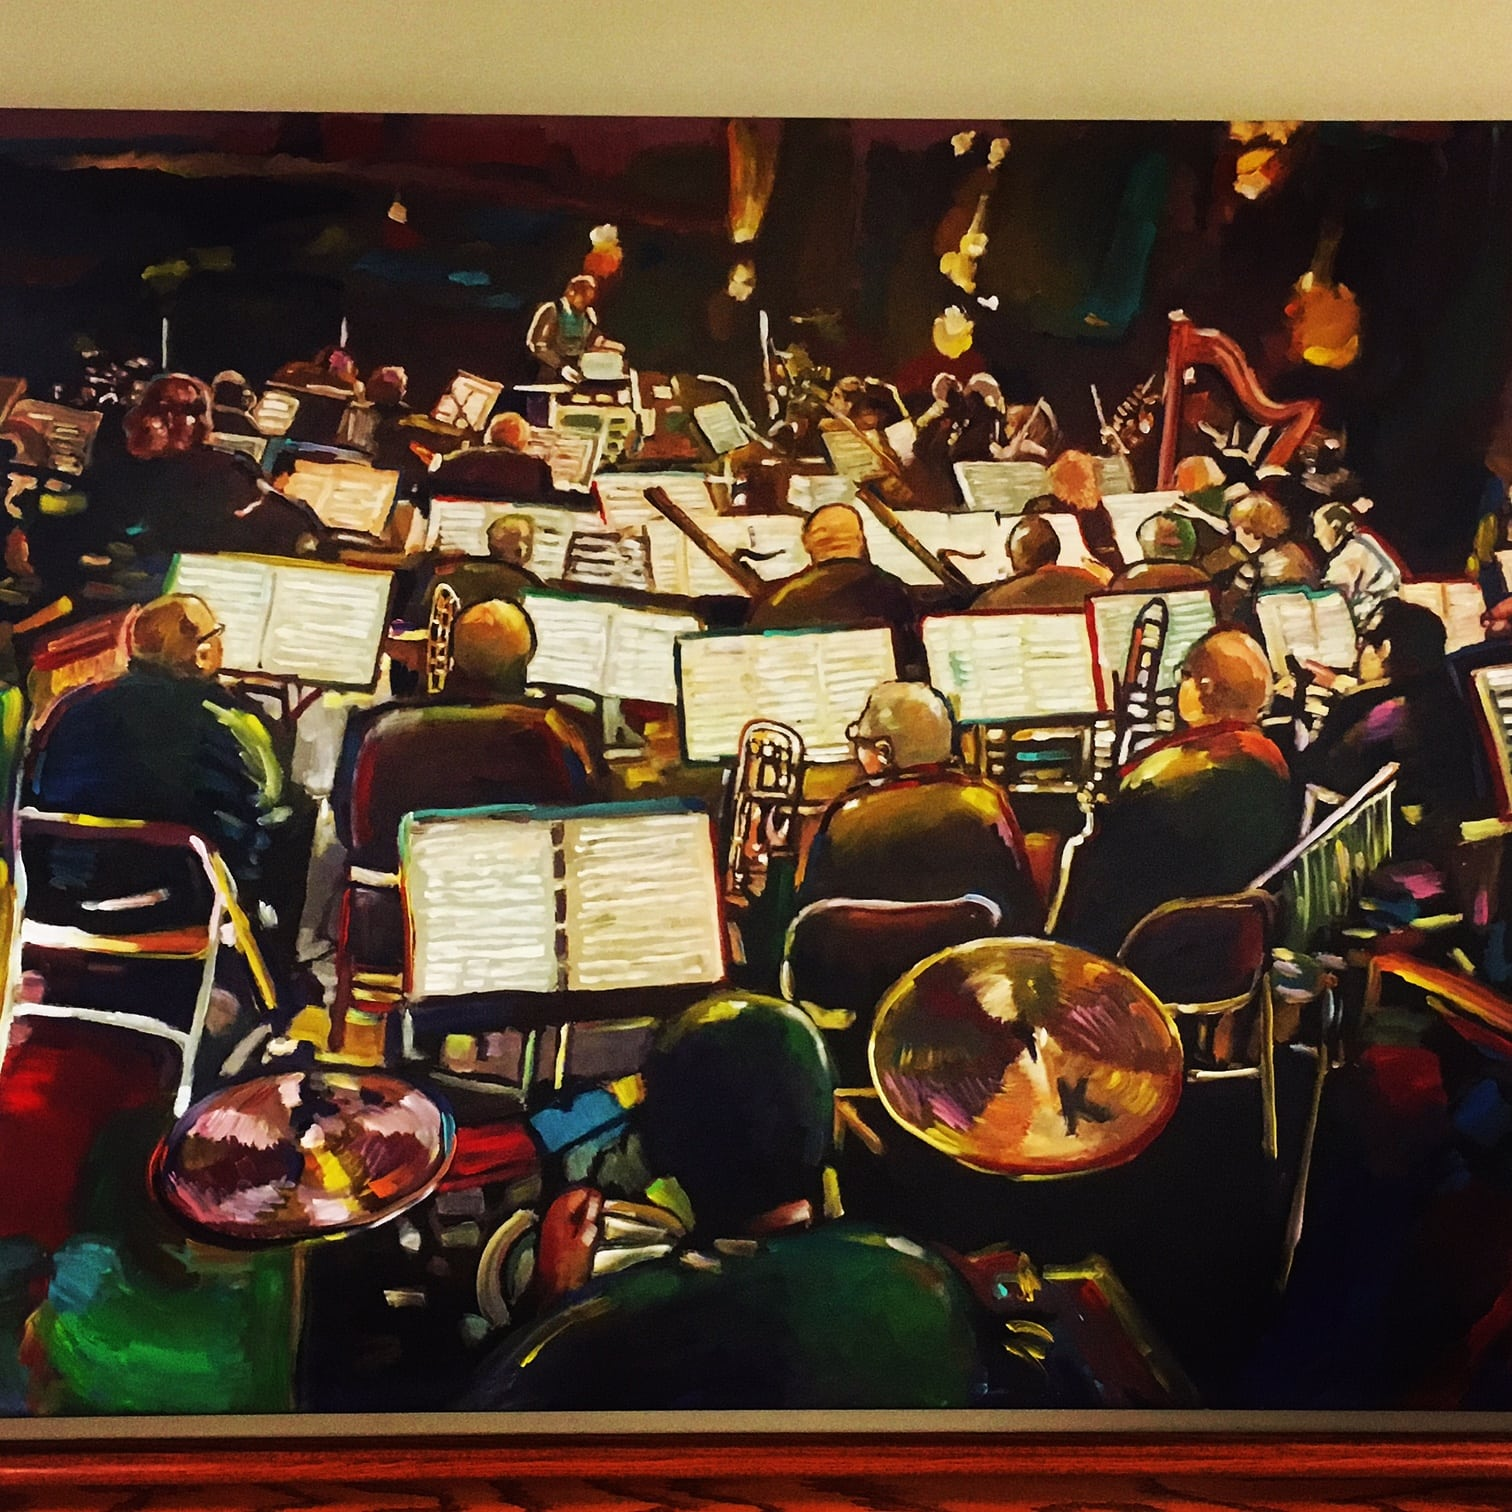 A different angle of the Wellesley Symphony Orchestra, this one by painter Howie Green, donated to Mass Bay by the artist.